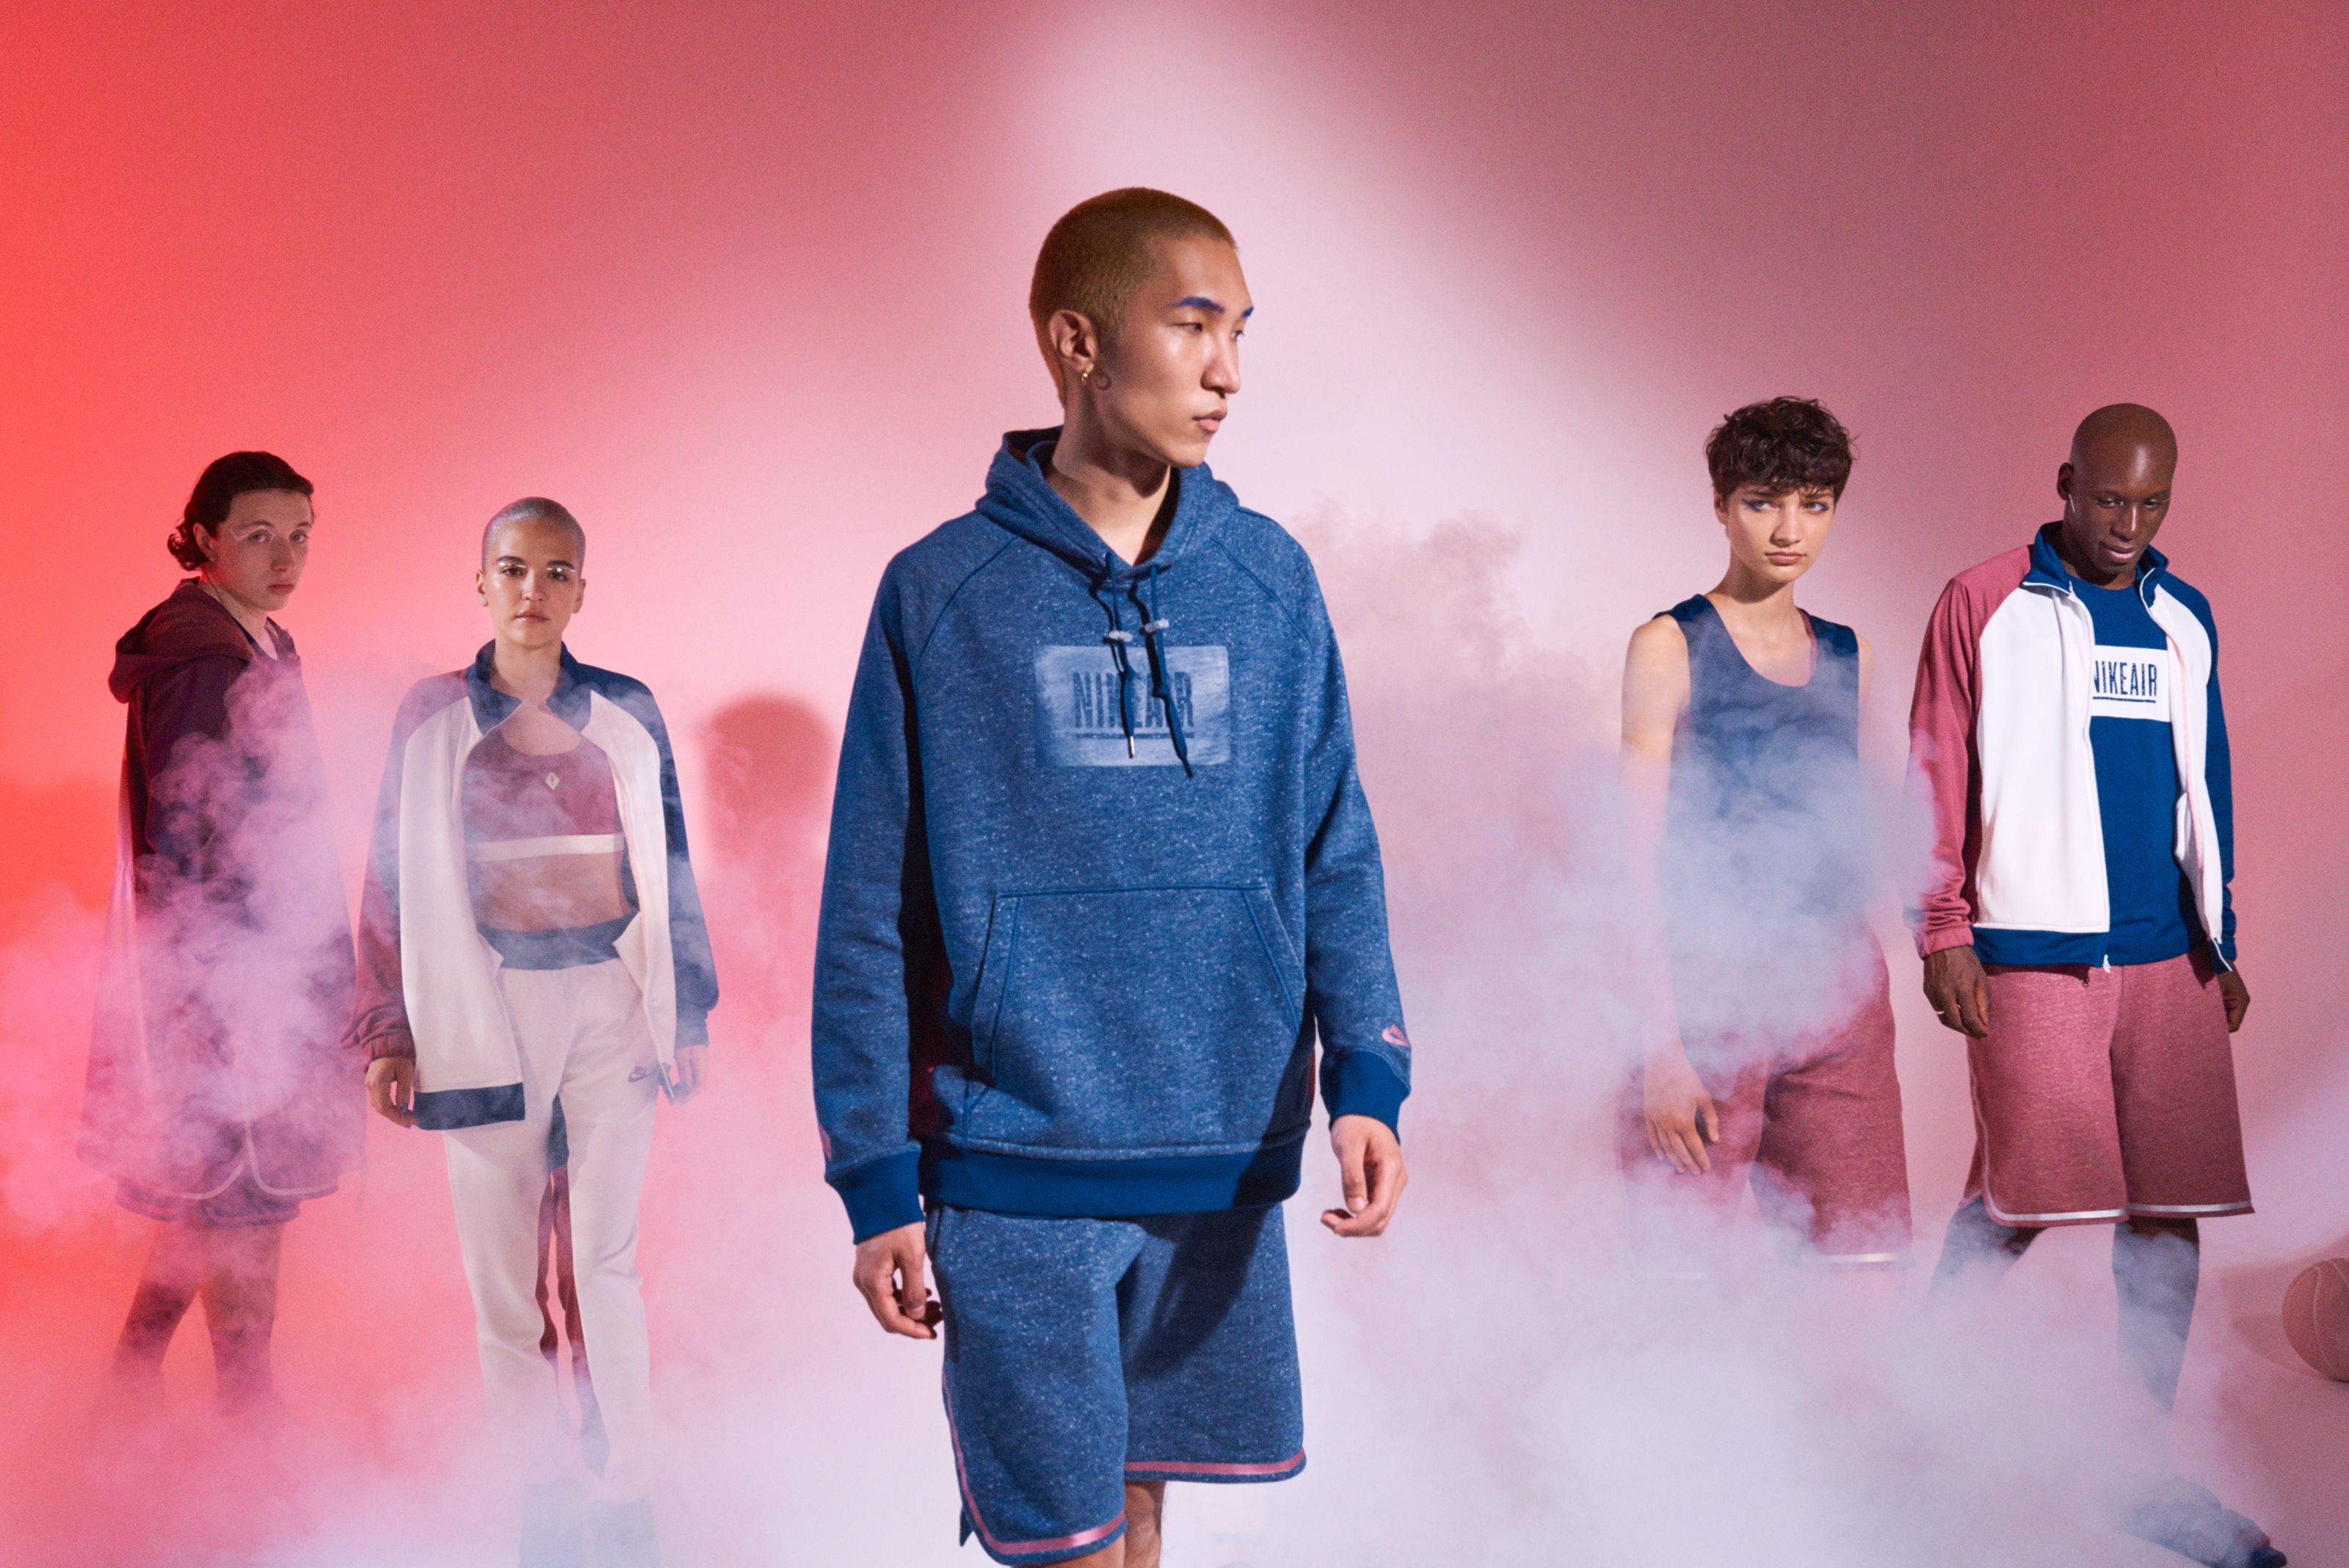 Su17_Nikelab_Pigalle_Hero_Group_original